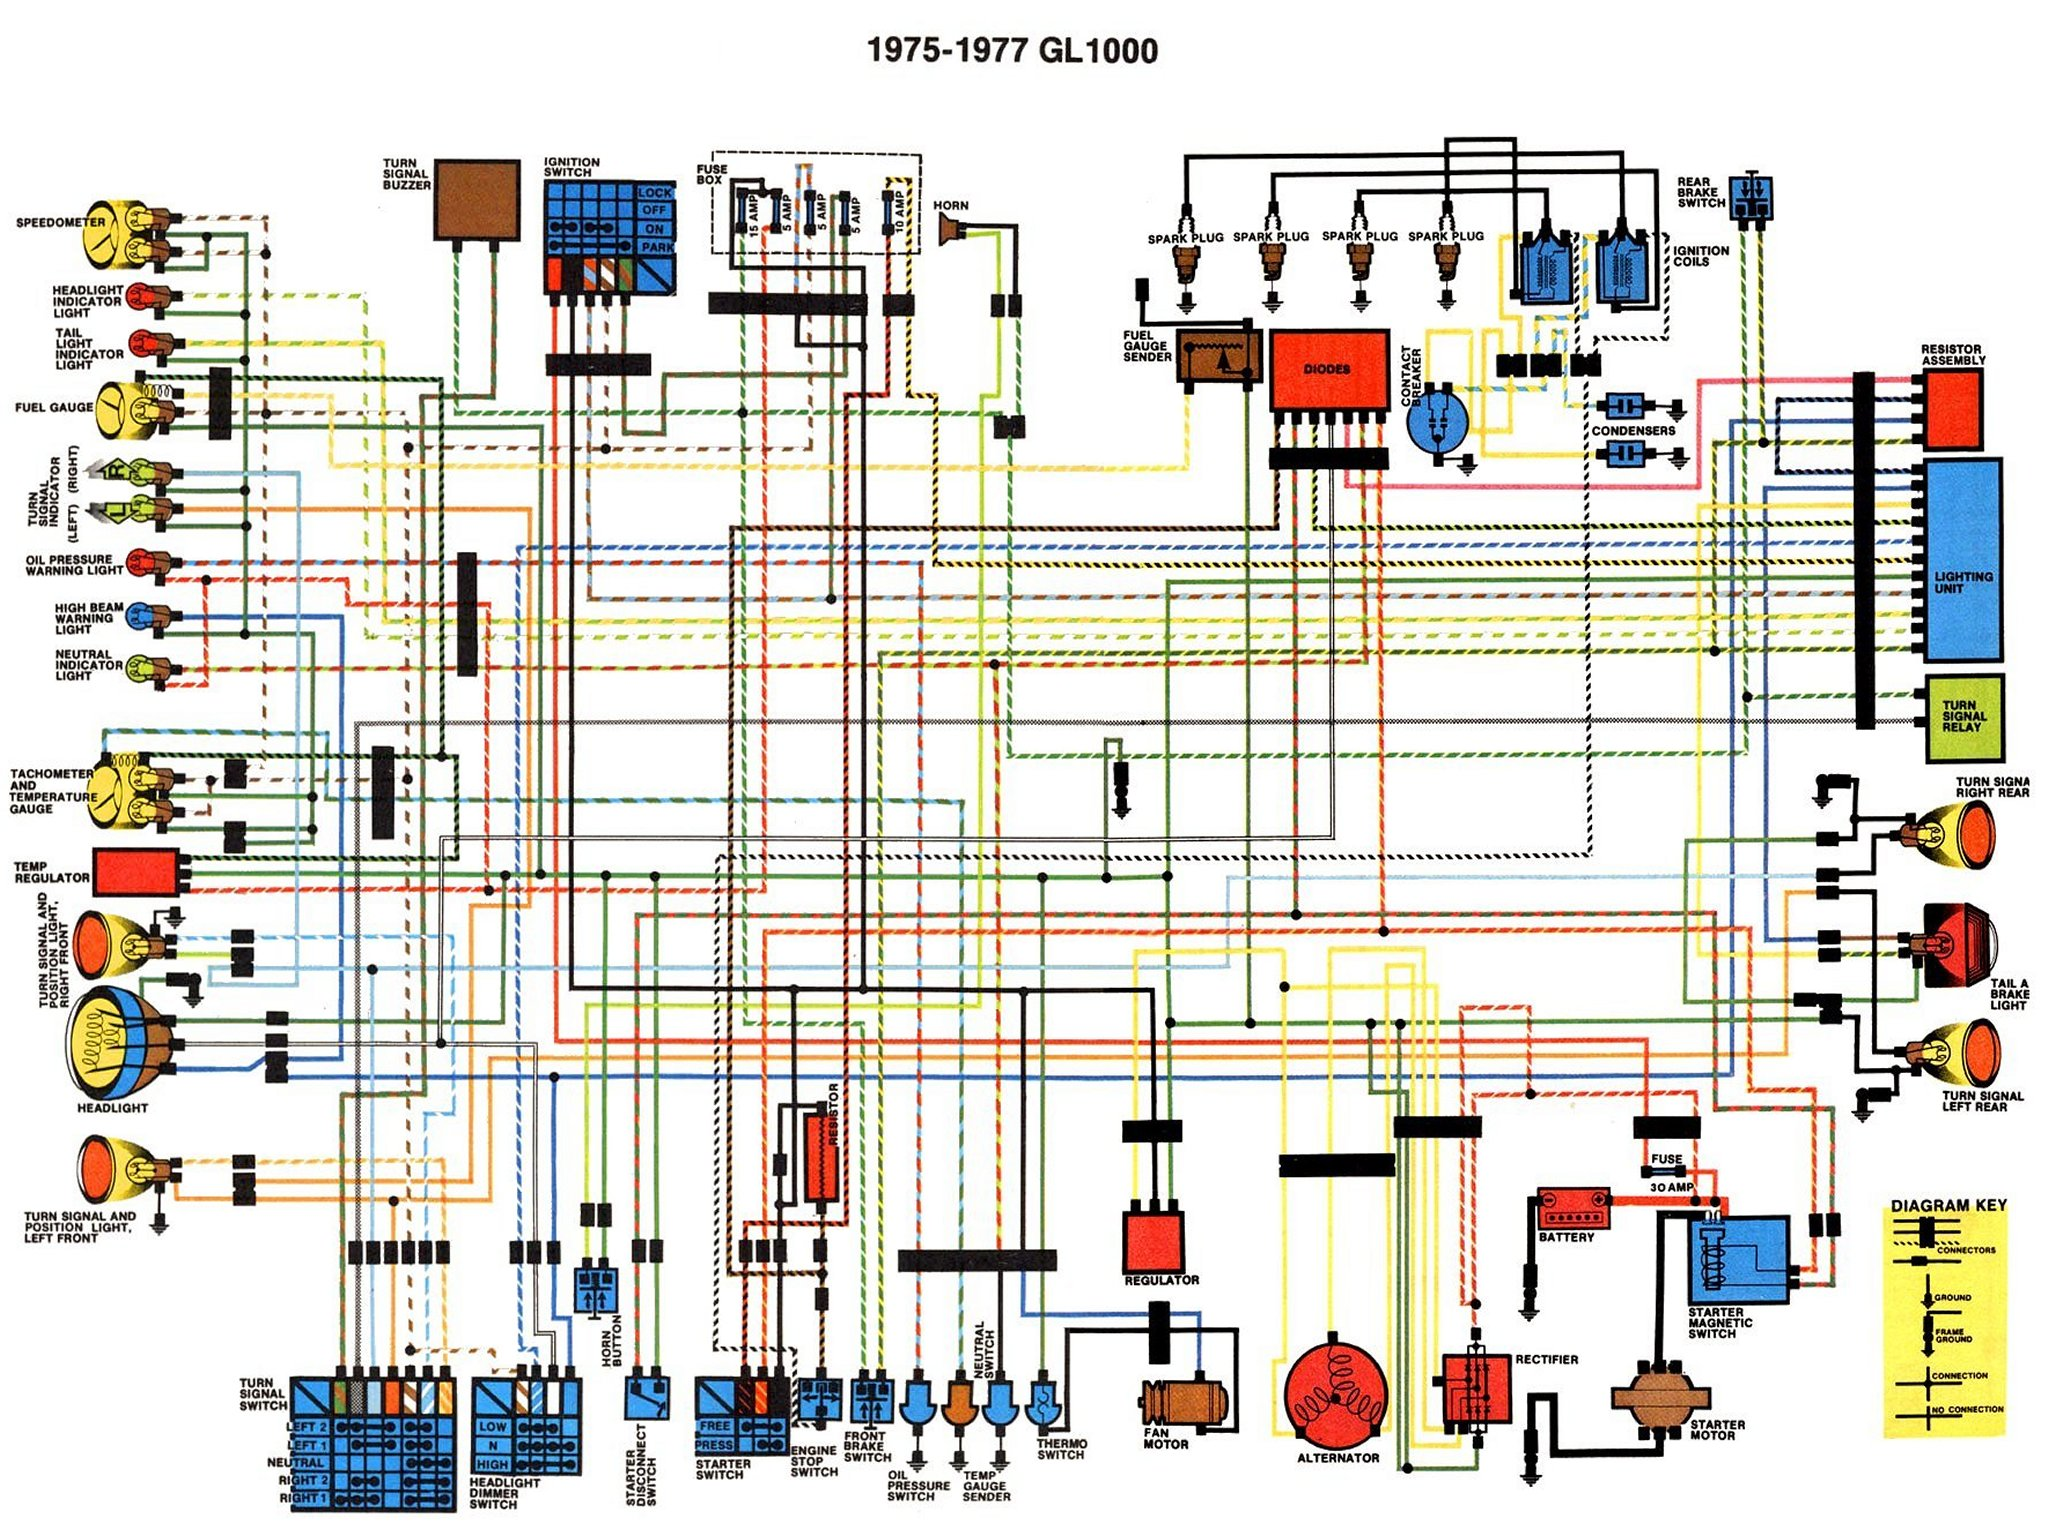 Amazing yacht club trailer wiring diagram adornment electrical and luxury cargo trailer wiring diagram frieze electrical diagram asfbconference2016 Choice Image